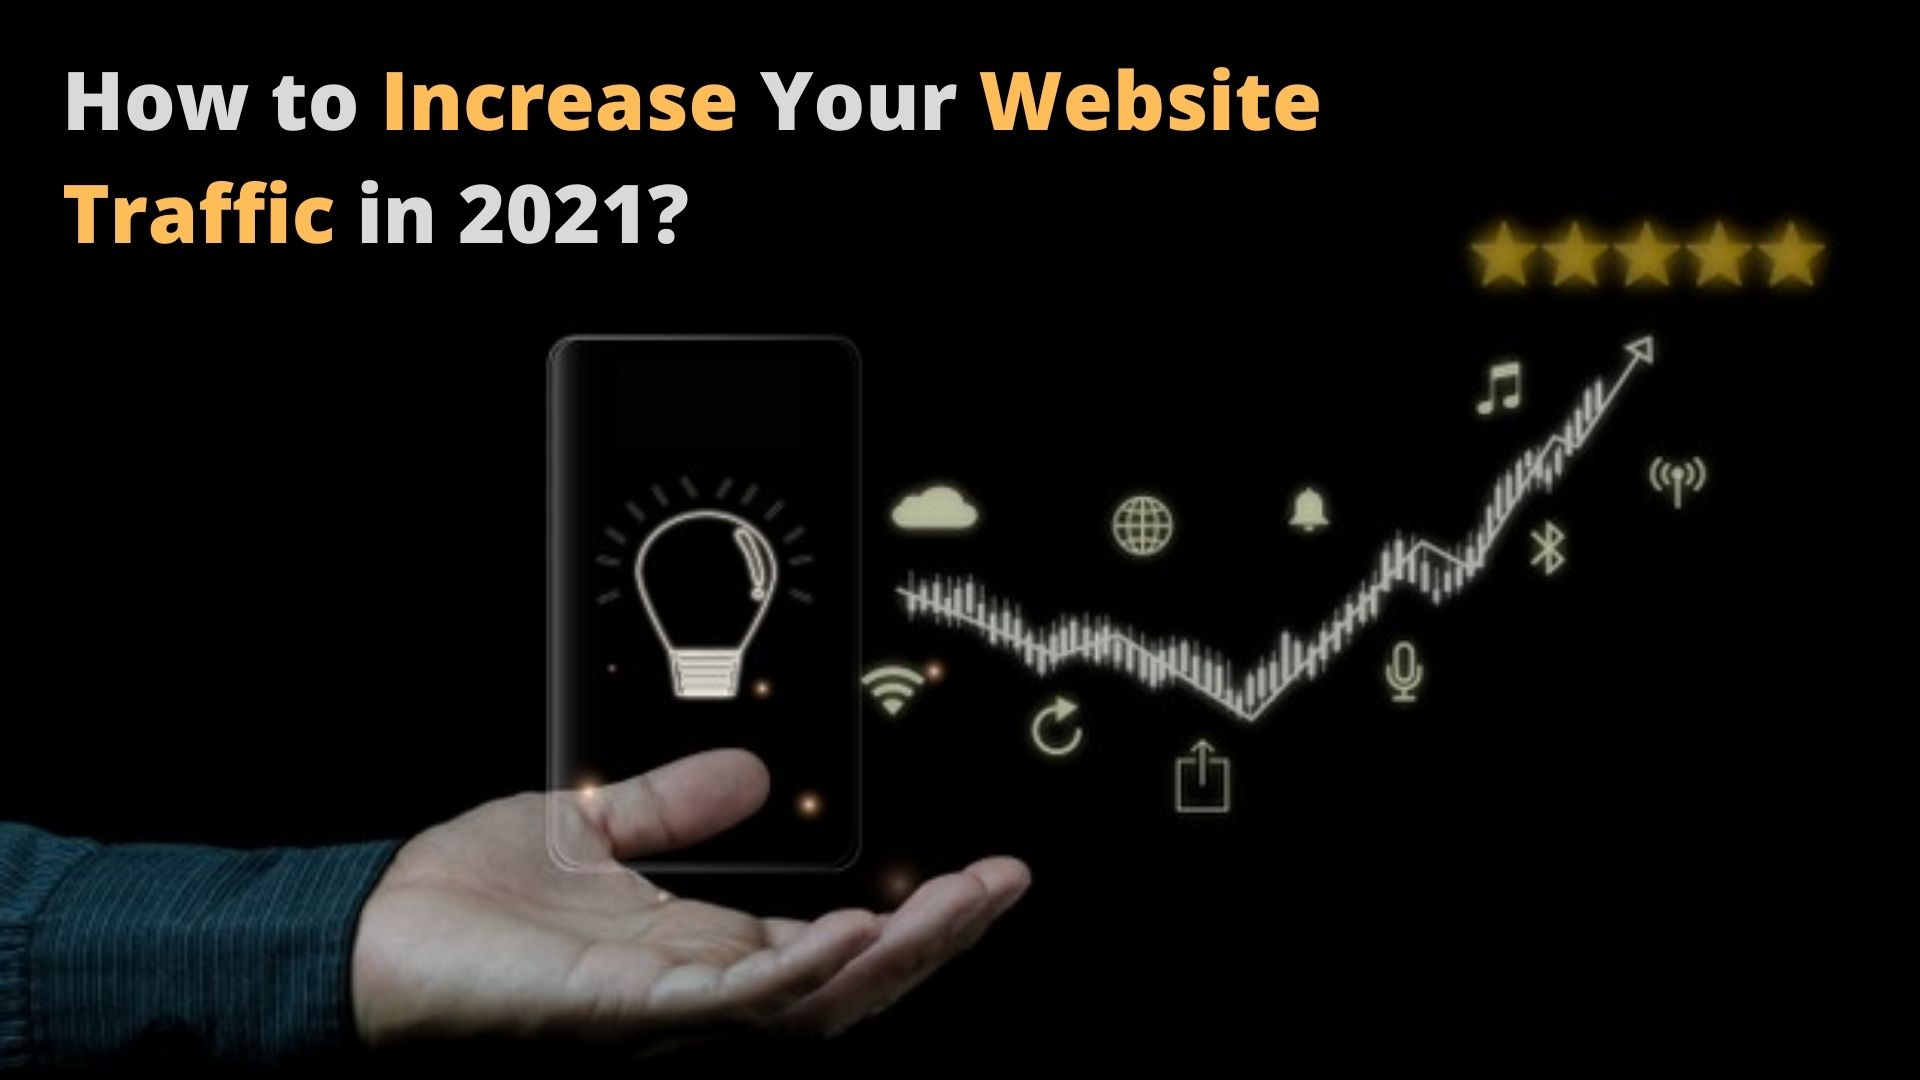 How to Increase Your Website Traffic in 2021?